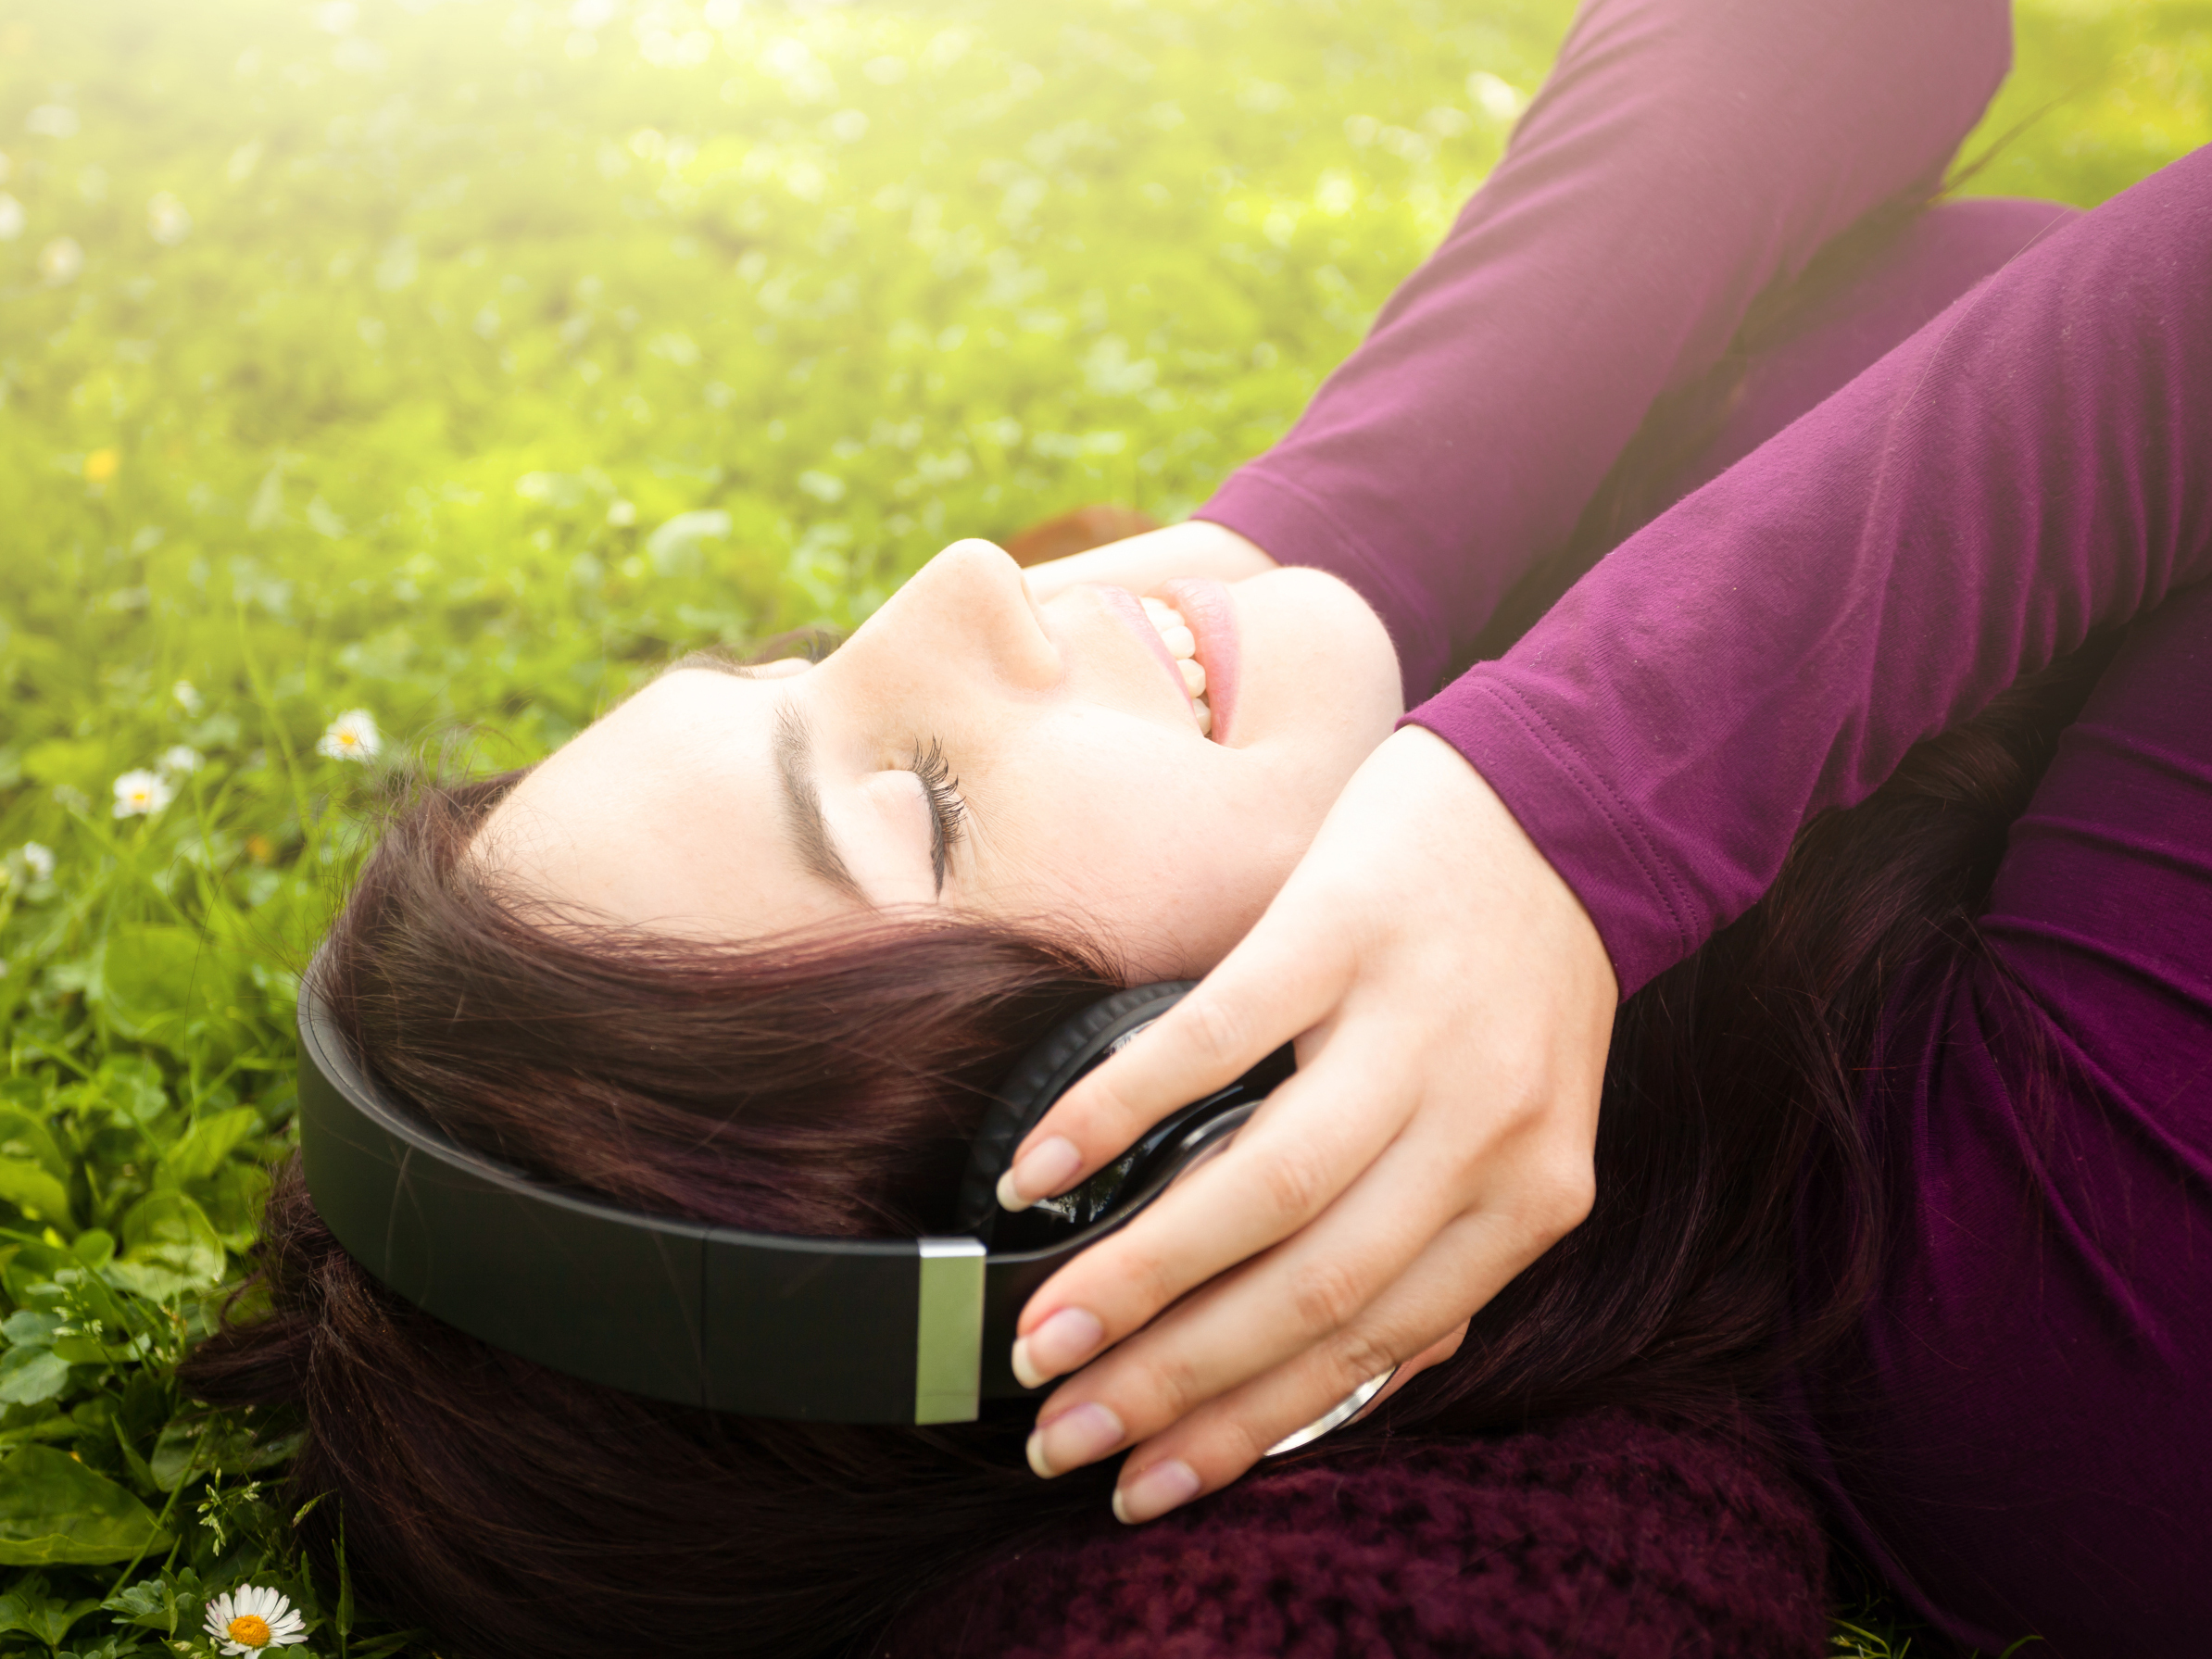 A woman lying on the grass wearing over-ear headphones